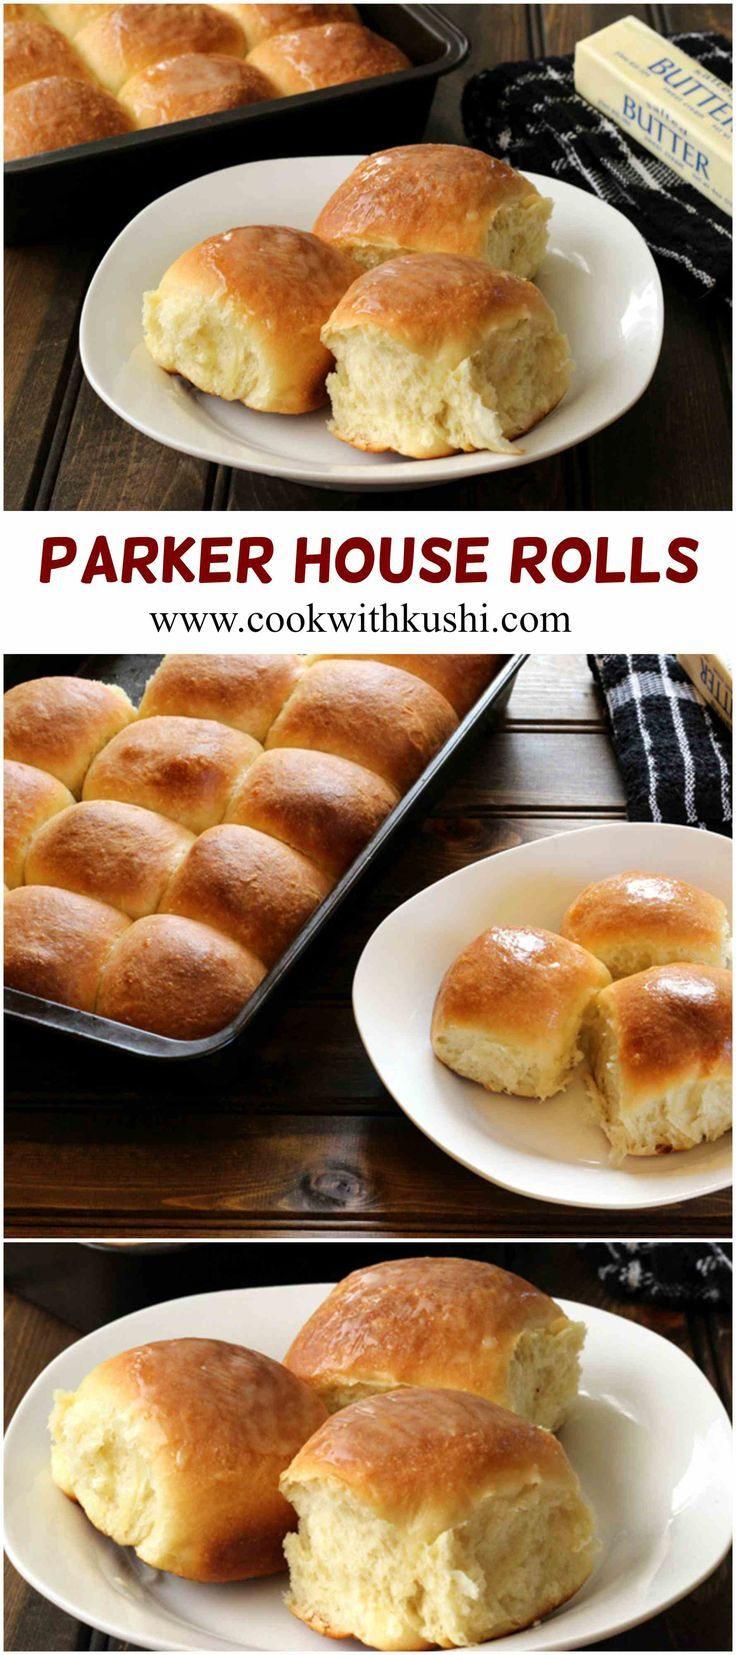 Parker House Rolls are soft, irresistible and delicious buttery rolls that one must have on their dinner table this holiday season  #thanksgiving #christmas /feedfeed/ /bhg/ #buzzfeedfood #bread #rolls #bake #breakfast #dinner #lunch #holiday #recipe